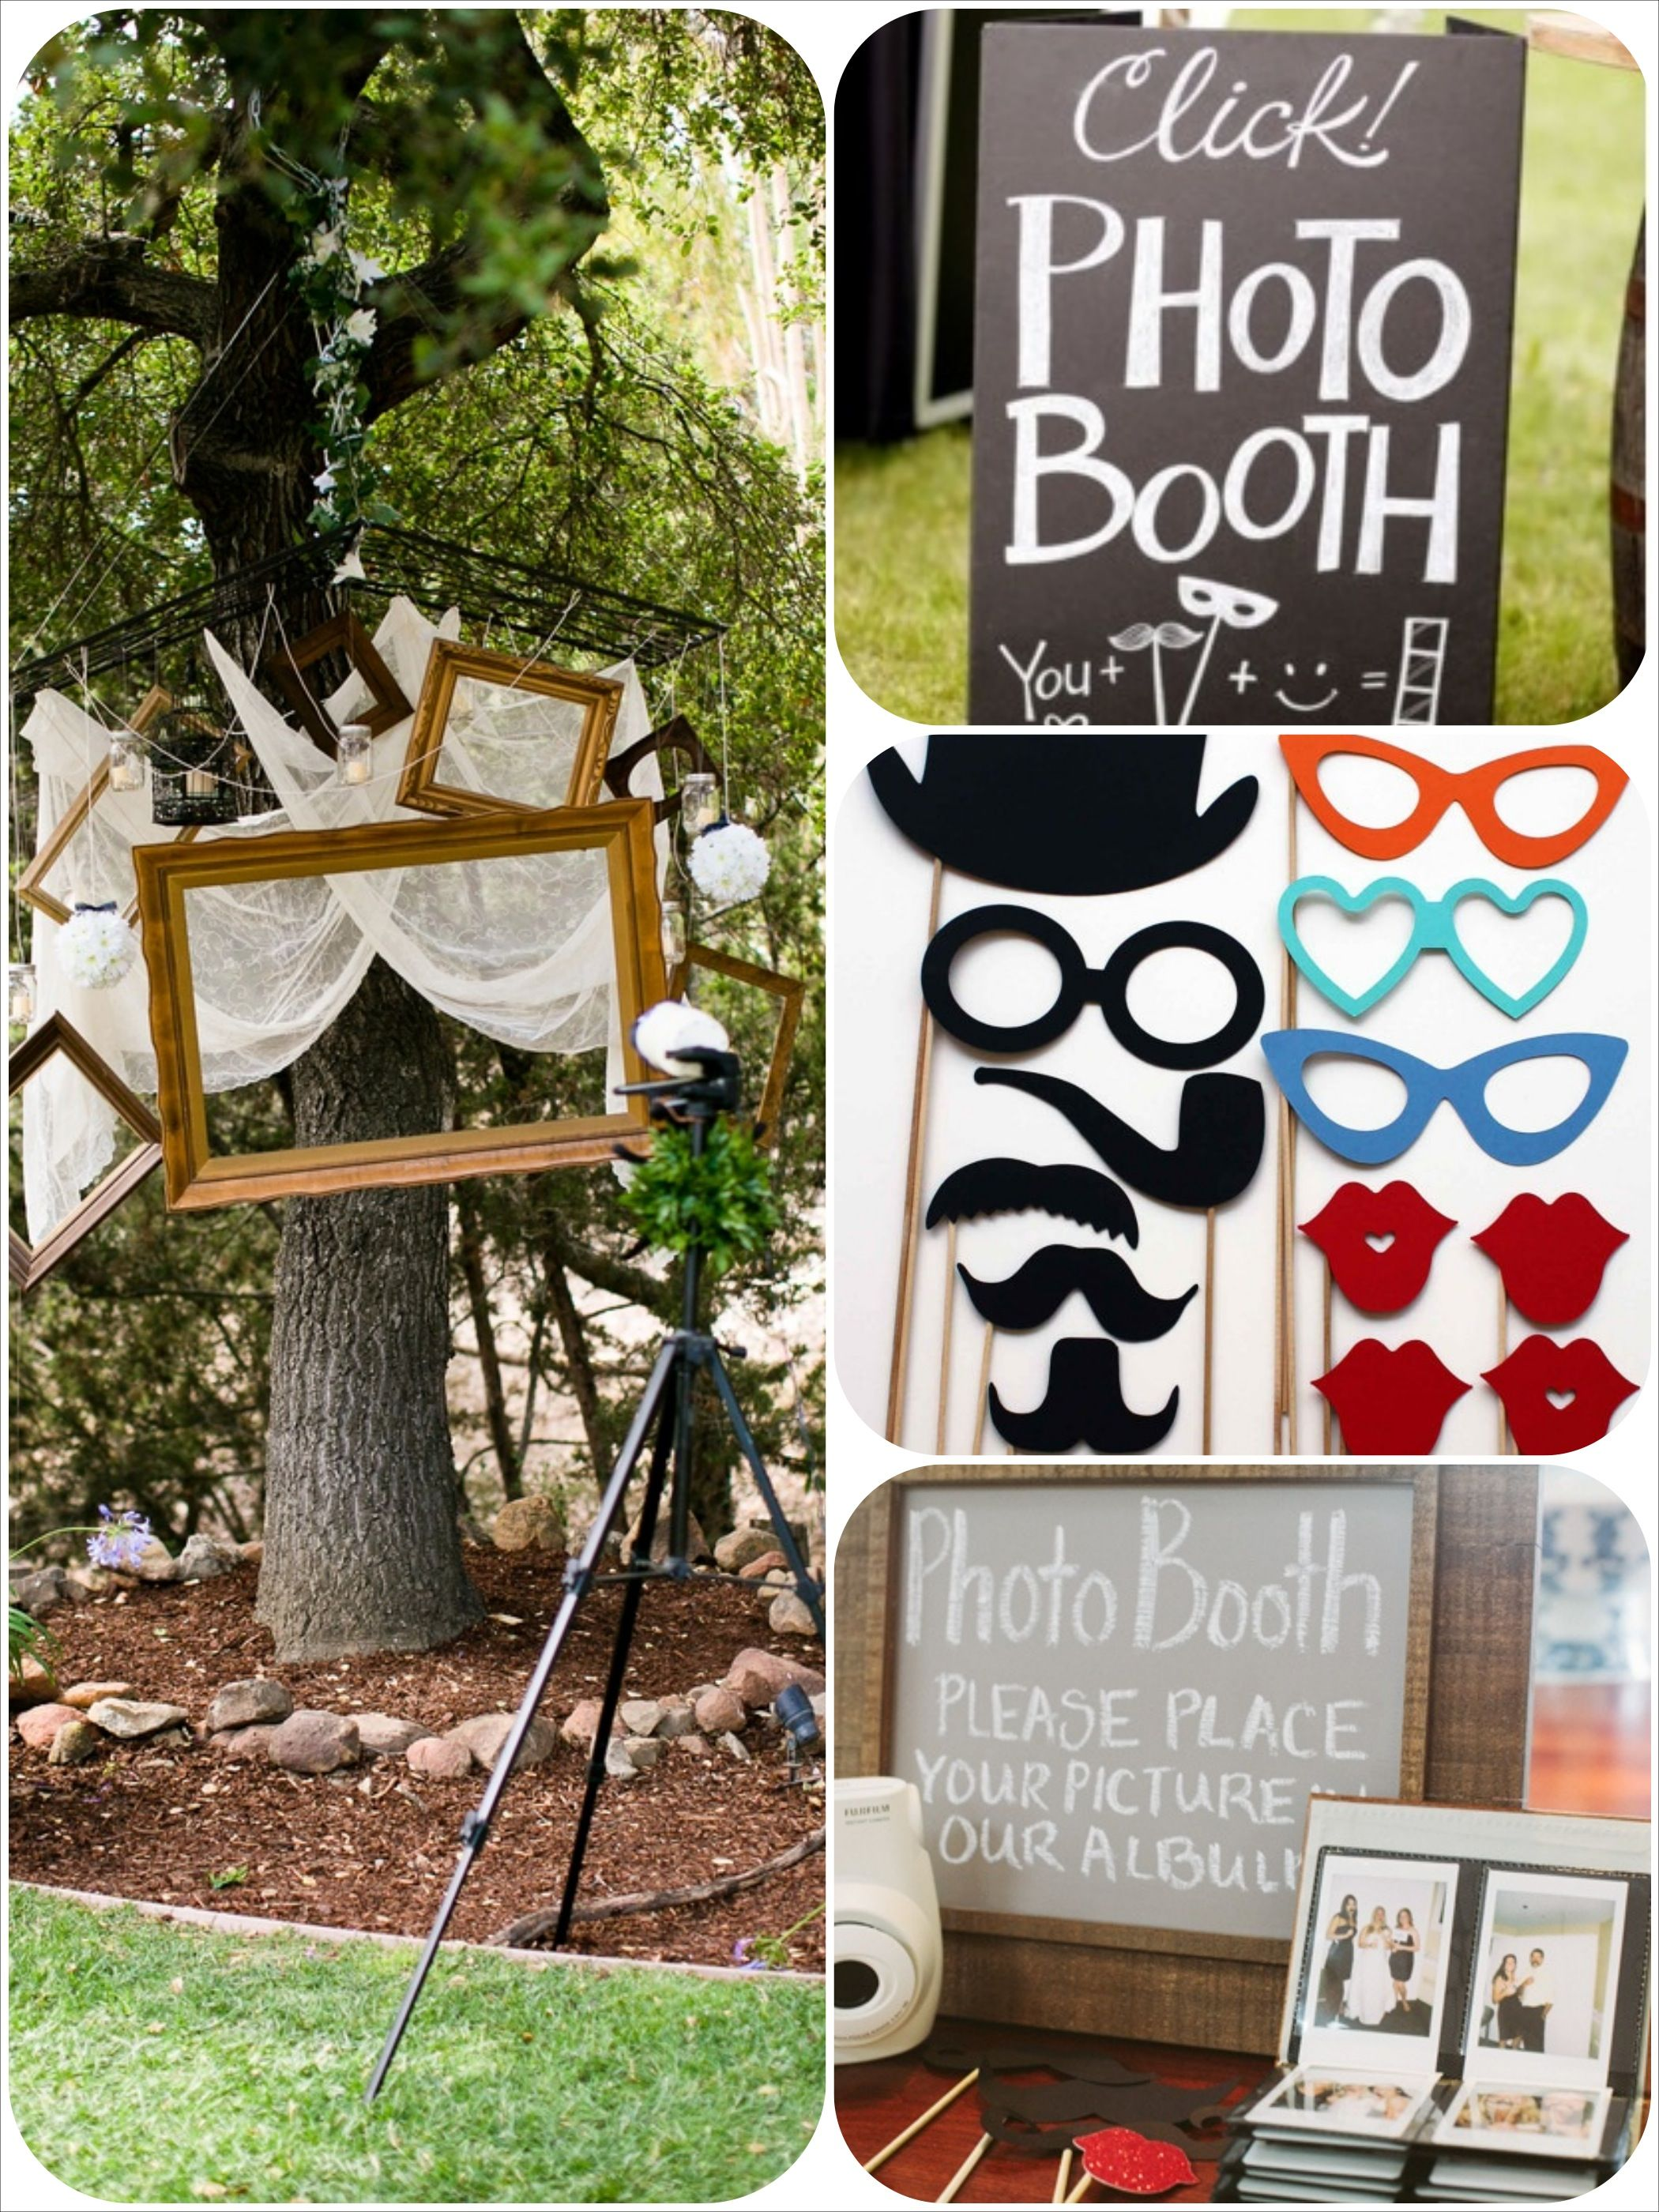 Photomaton Fait Maison Diy Wedding Photo Booth Diy Photo Booth Diy Wedding